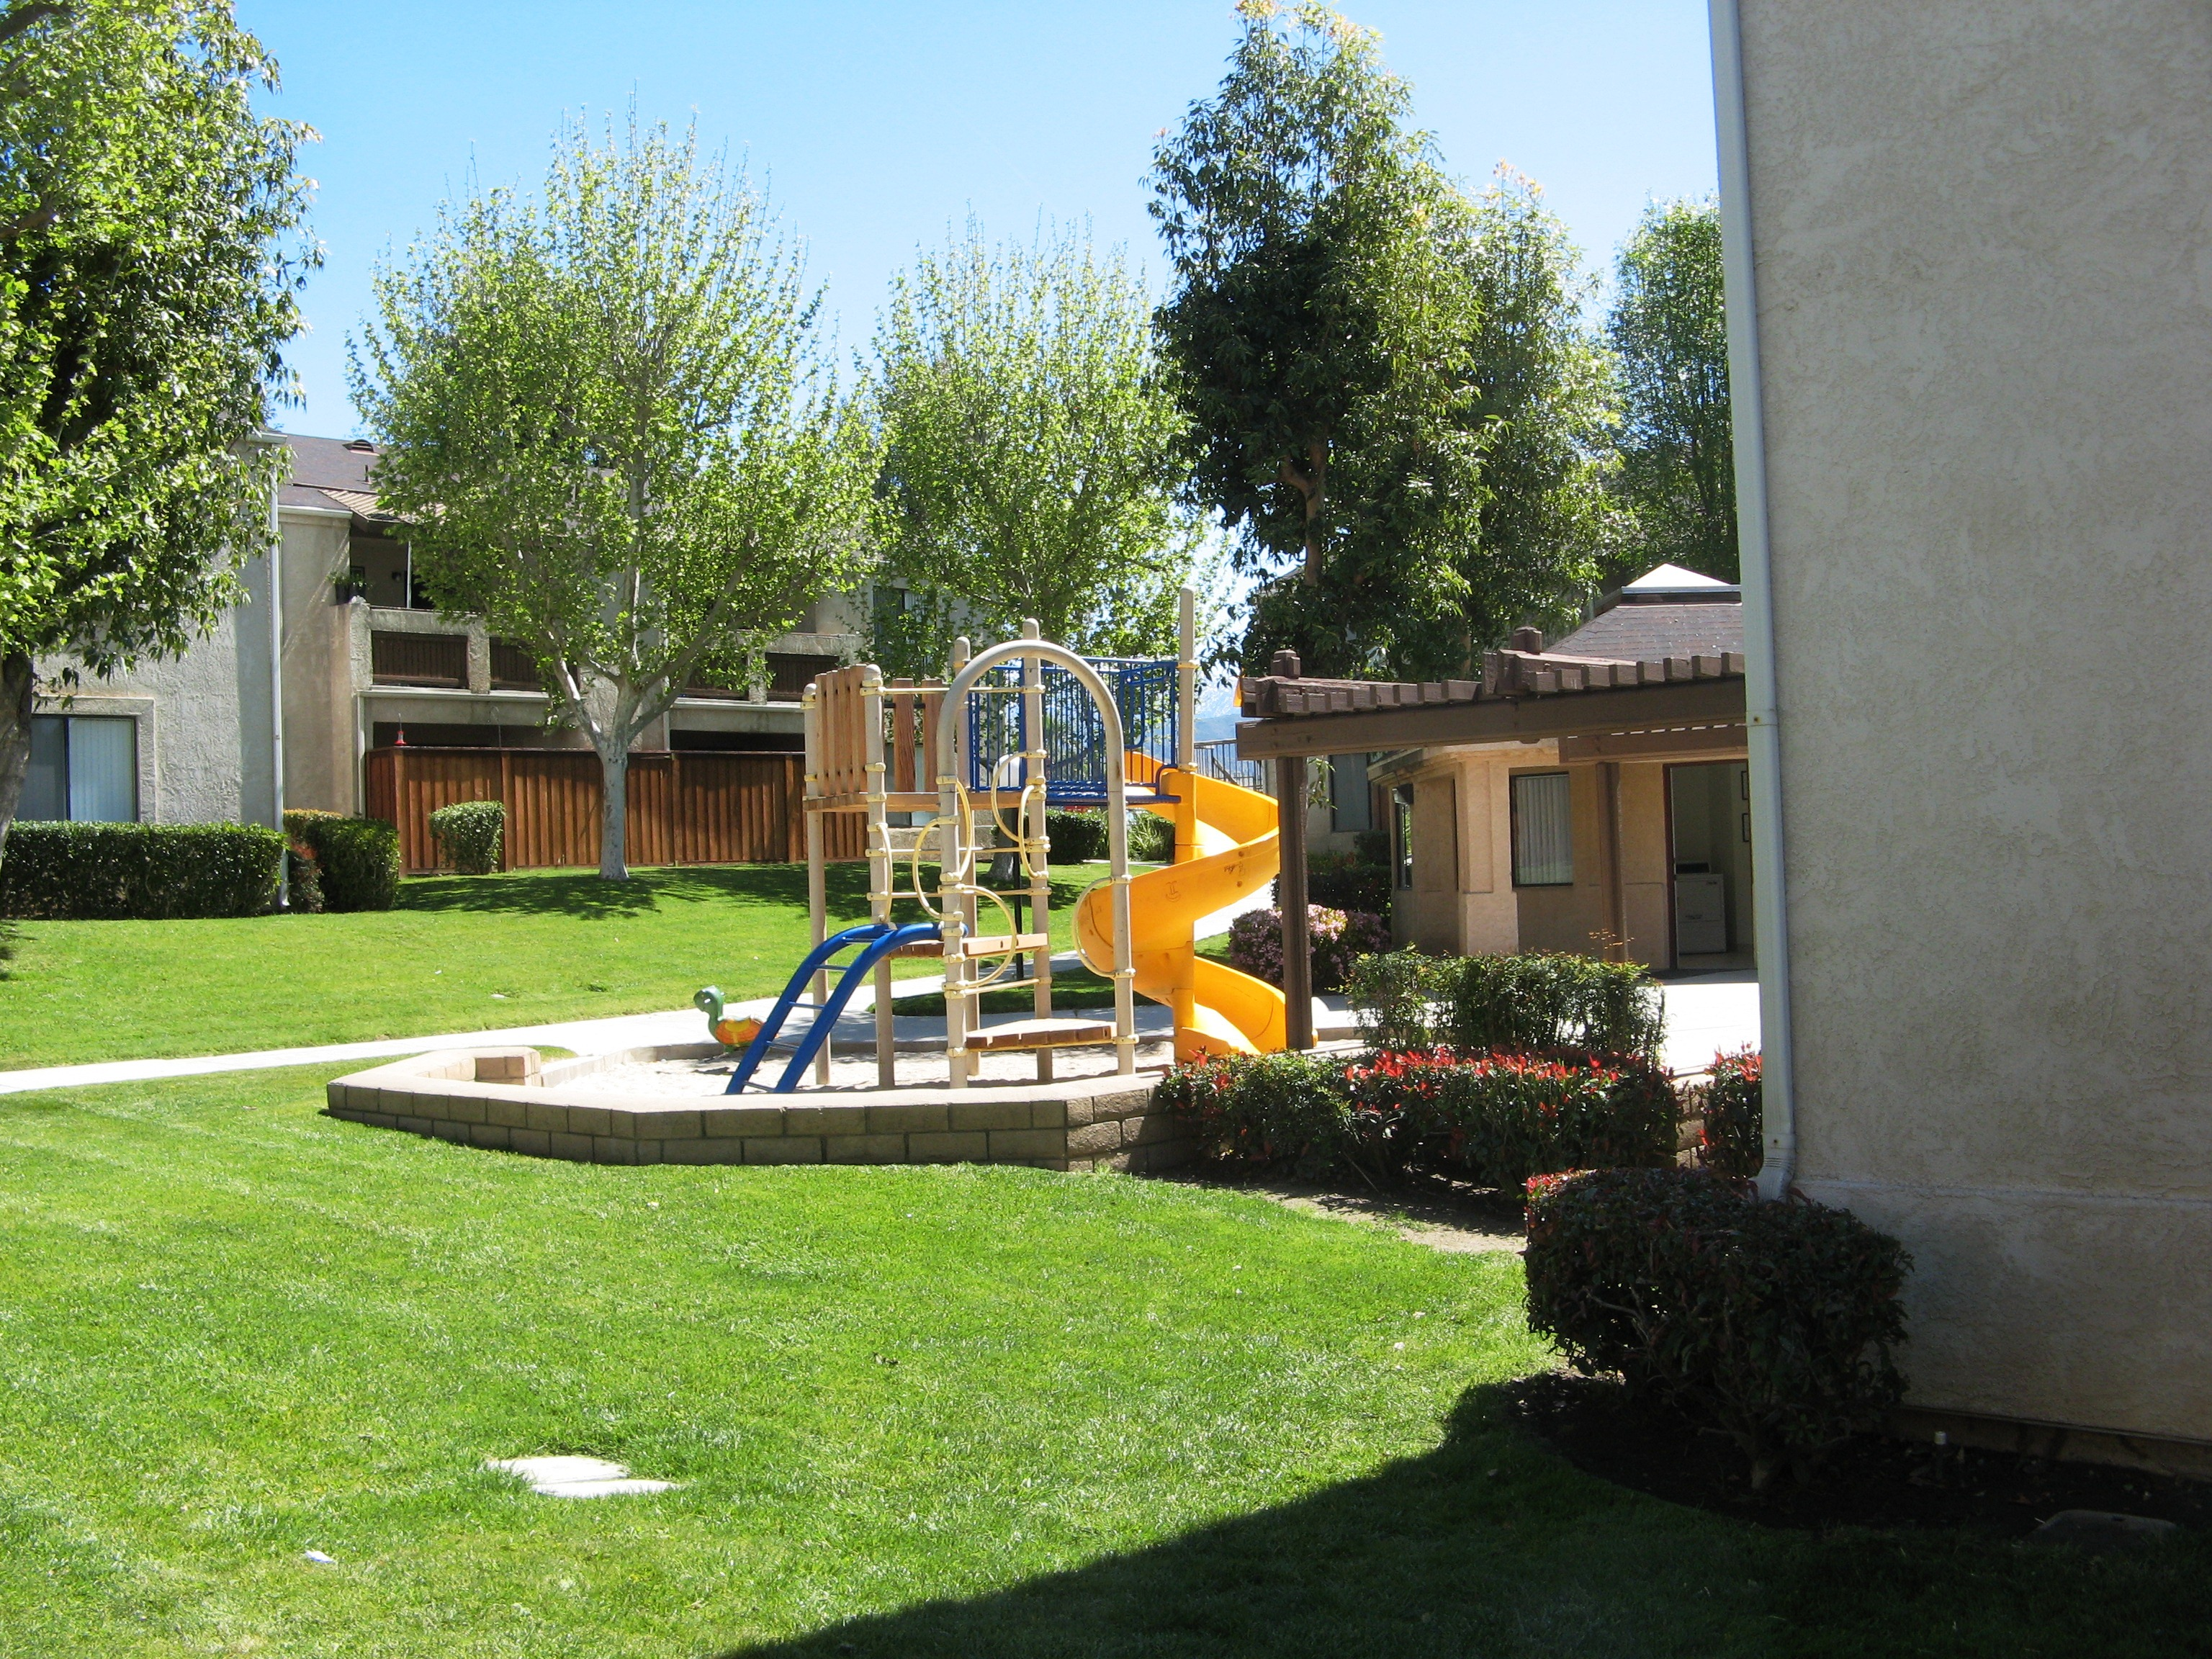 Highland Meadows Apartments image 4